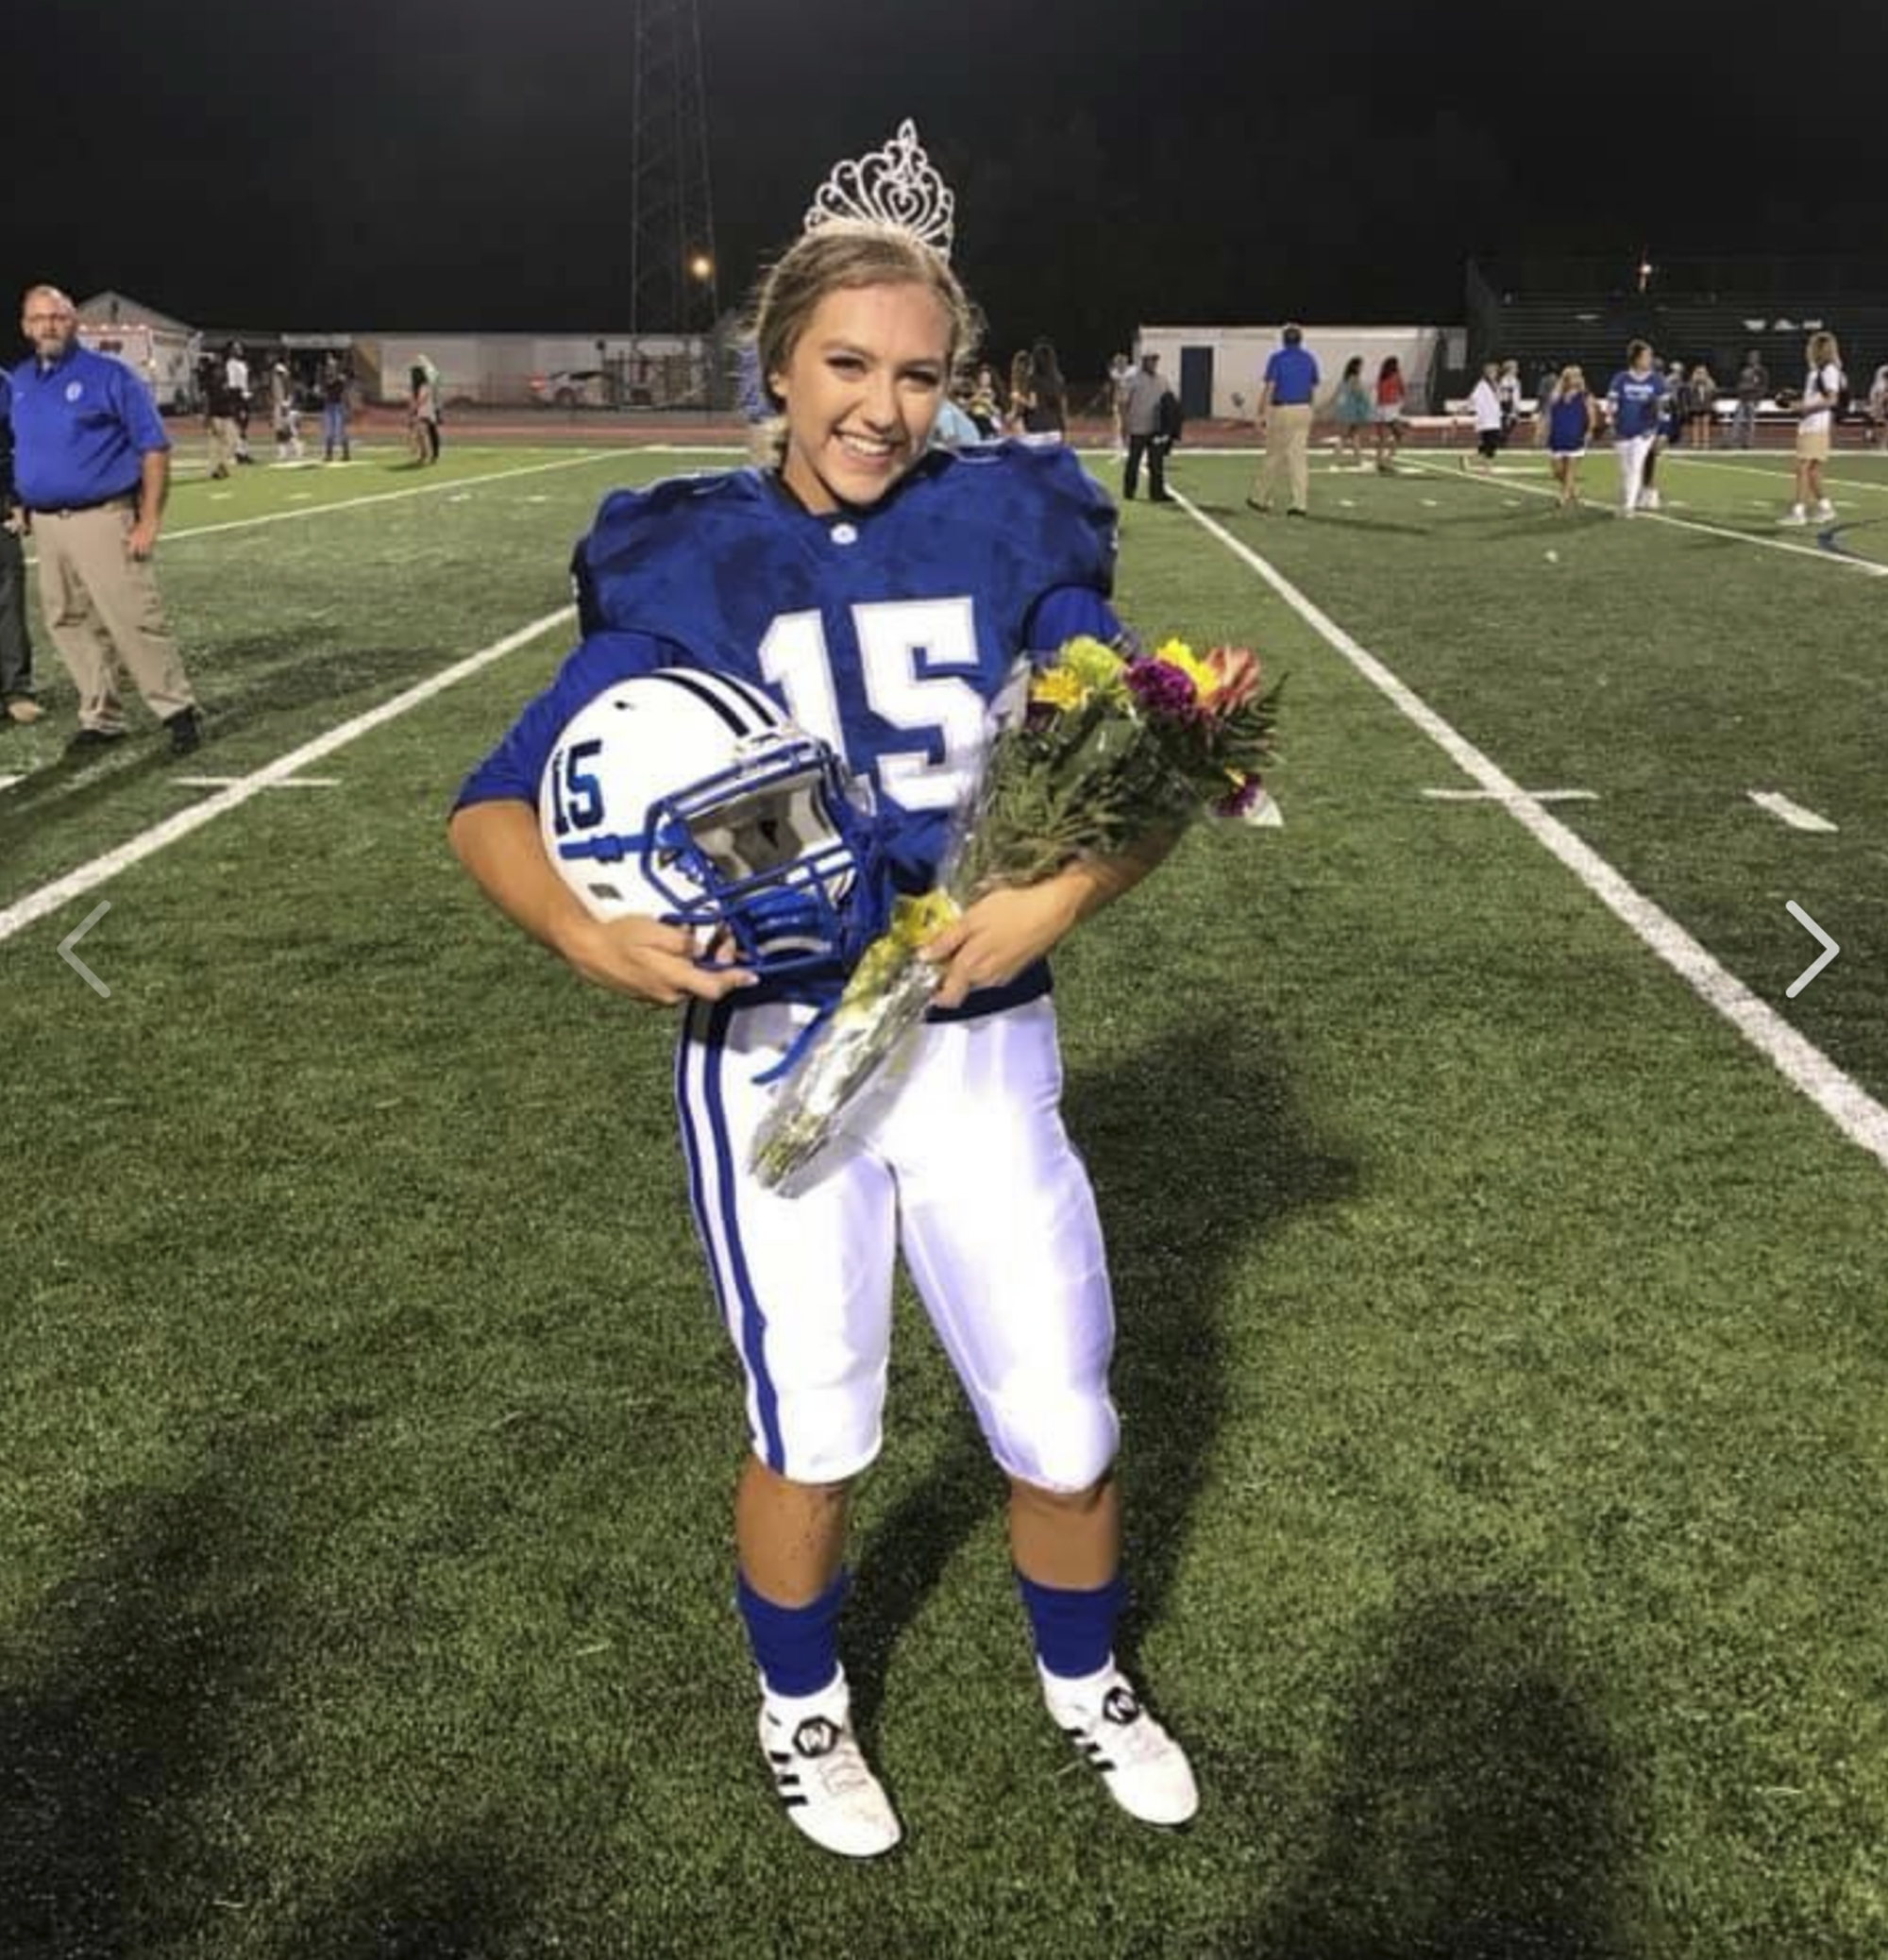 Ocean Springs High School's 2018 Homecoming Queen Kaylee Foster holds her football helmet